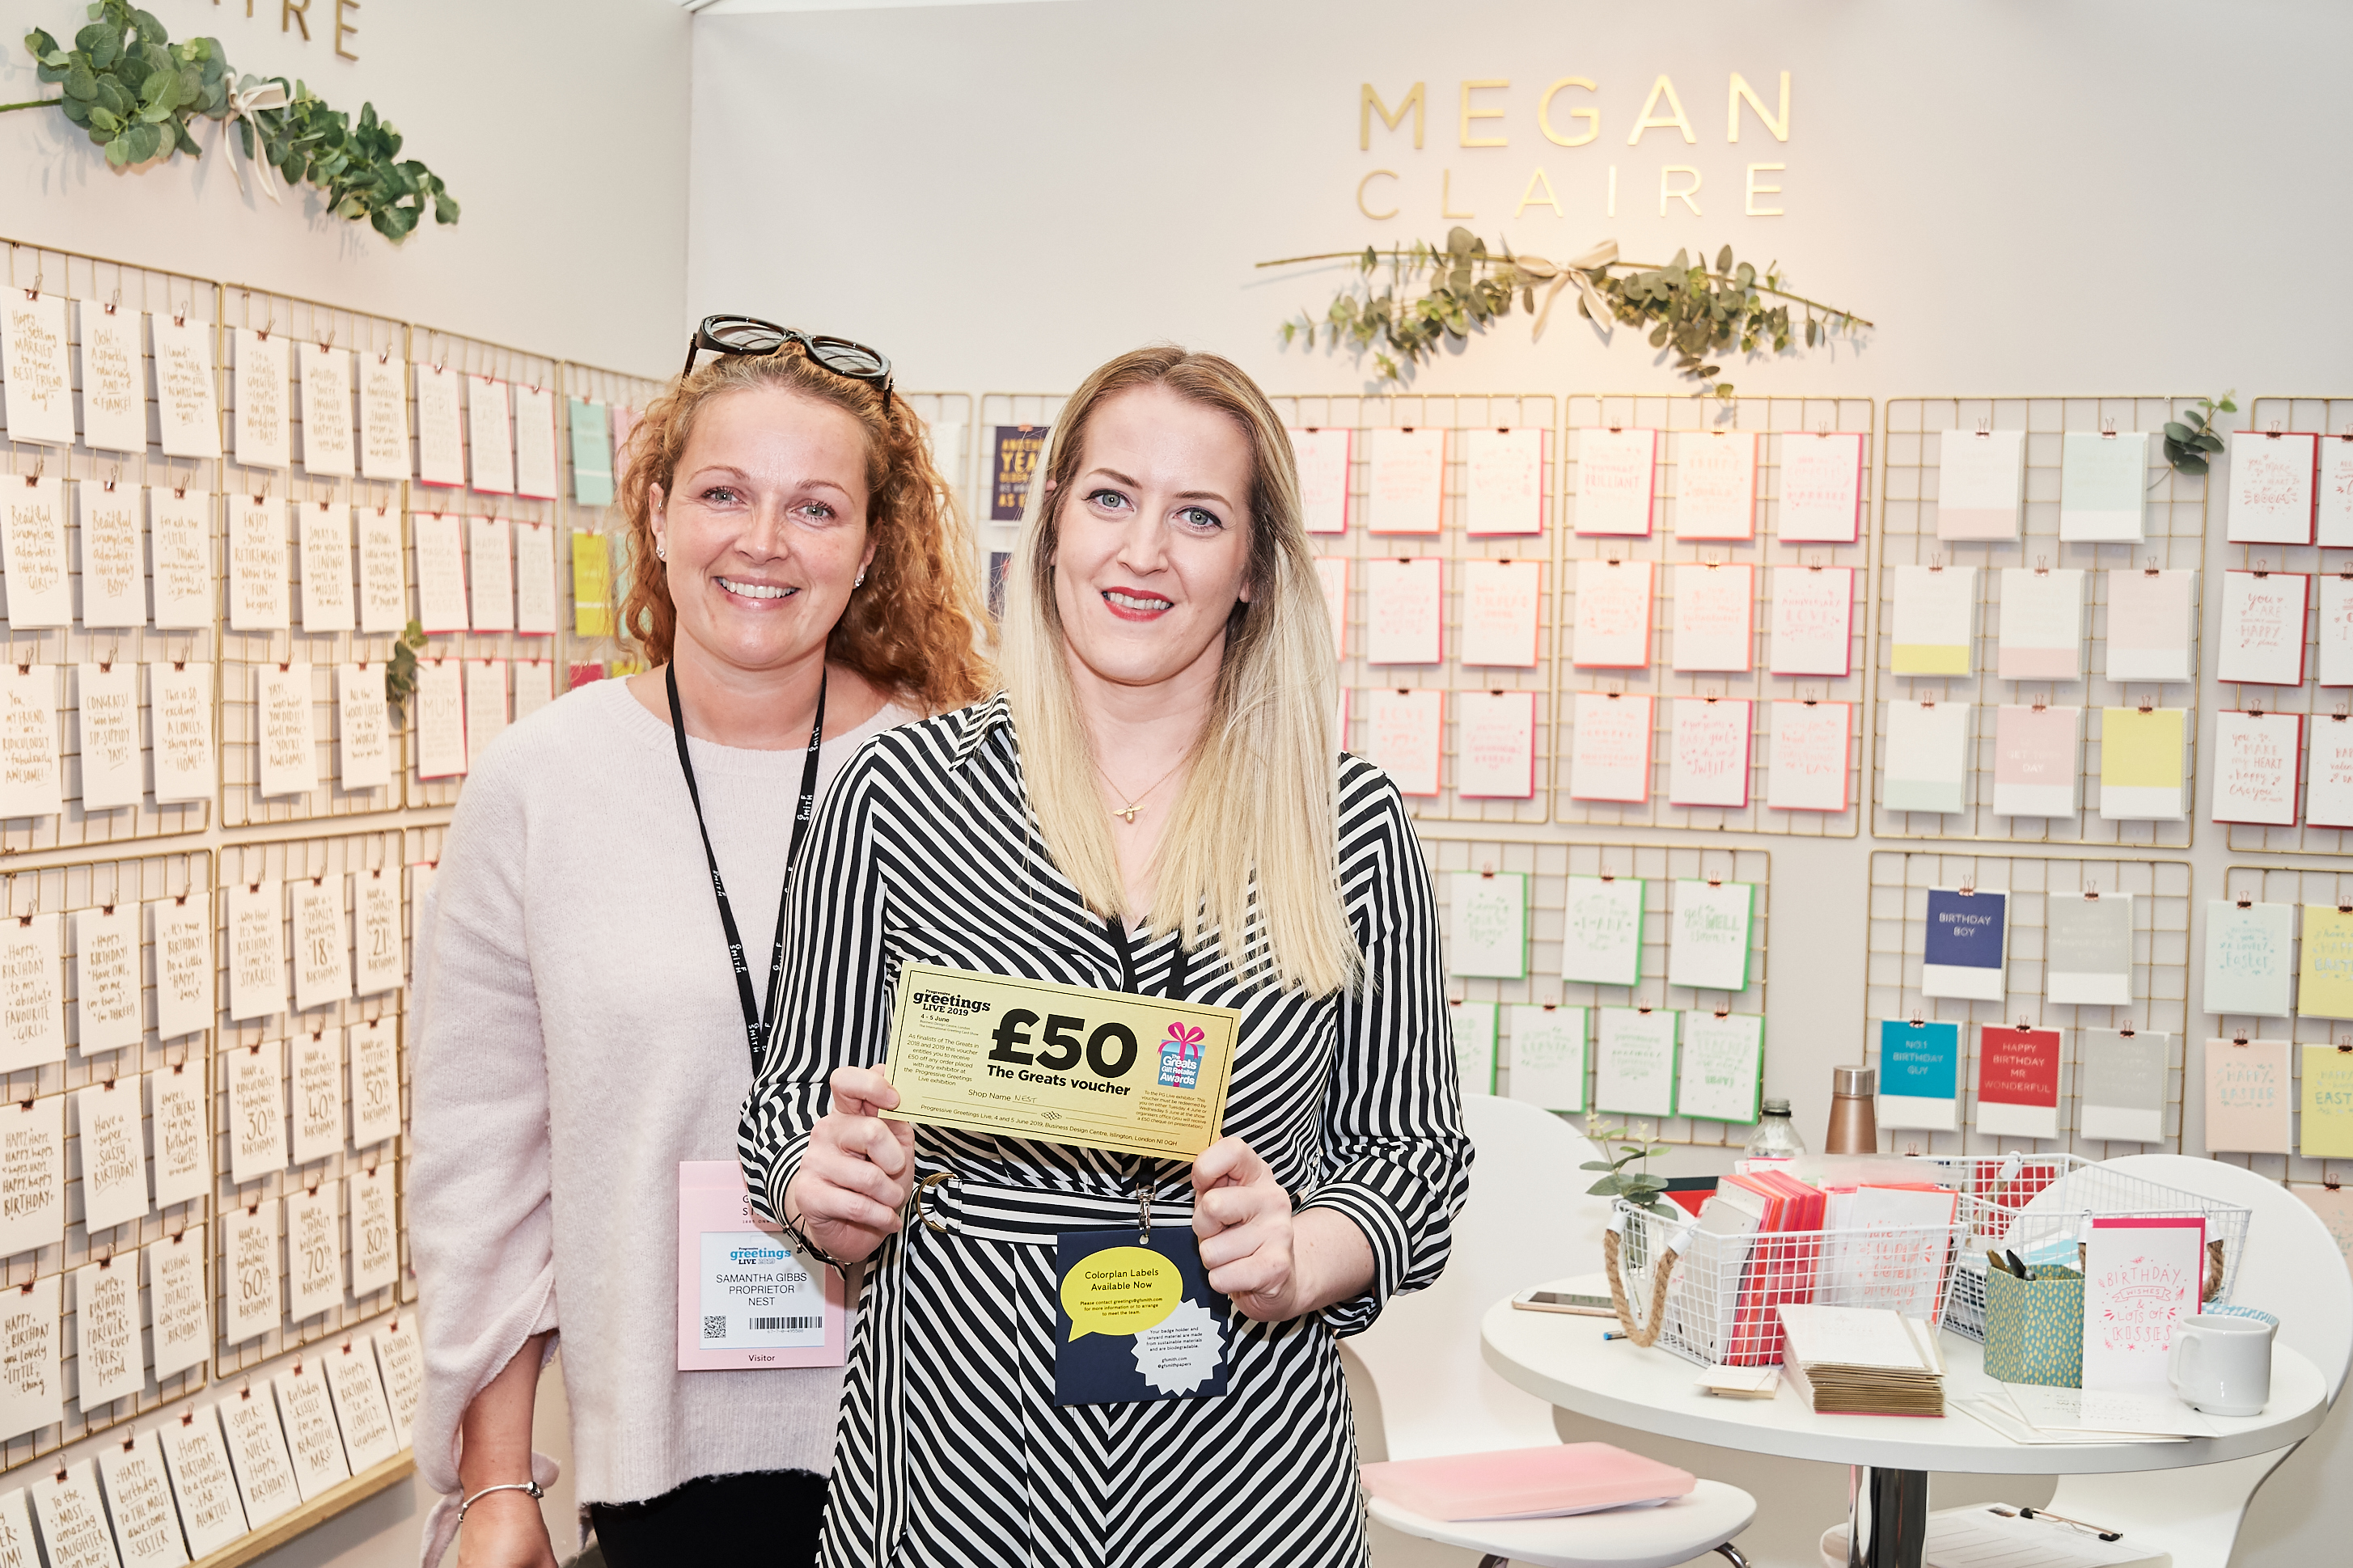 Above: (Right) Megan Purdie (seen here with Nest's Samantha Gibbs at PG Live), founder of Megan Claire will be sharing her inspiring story.